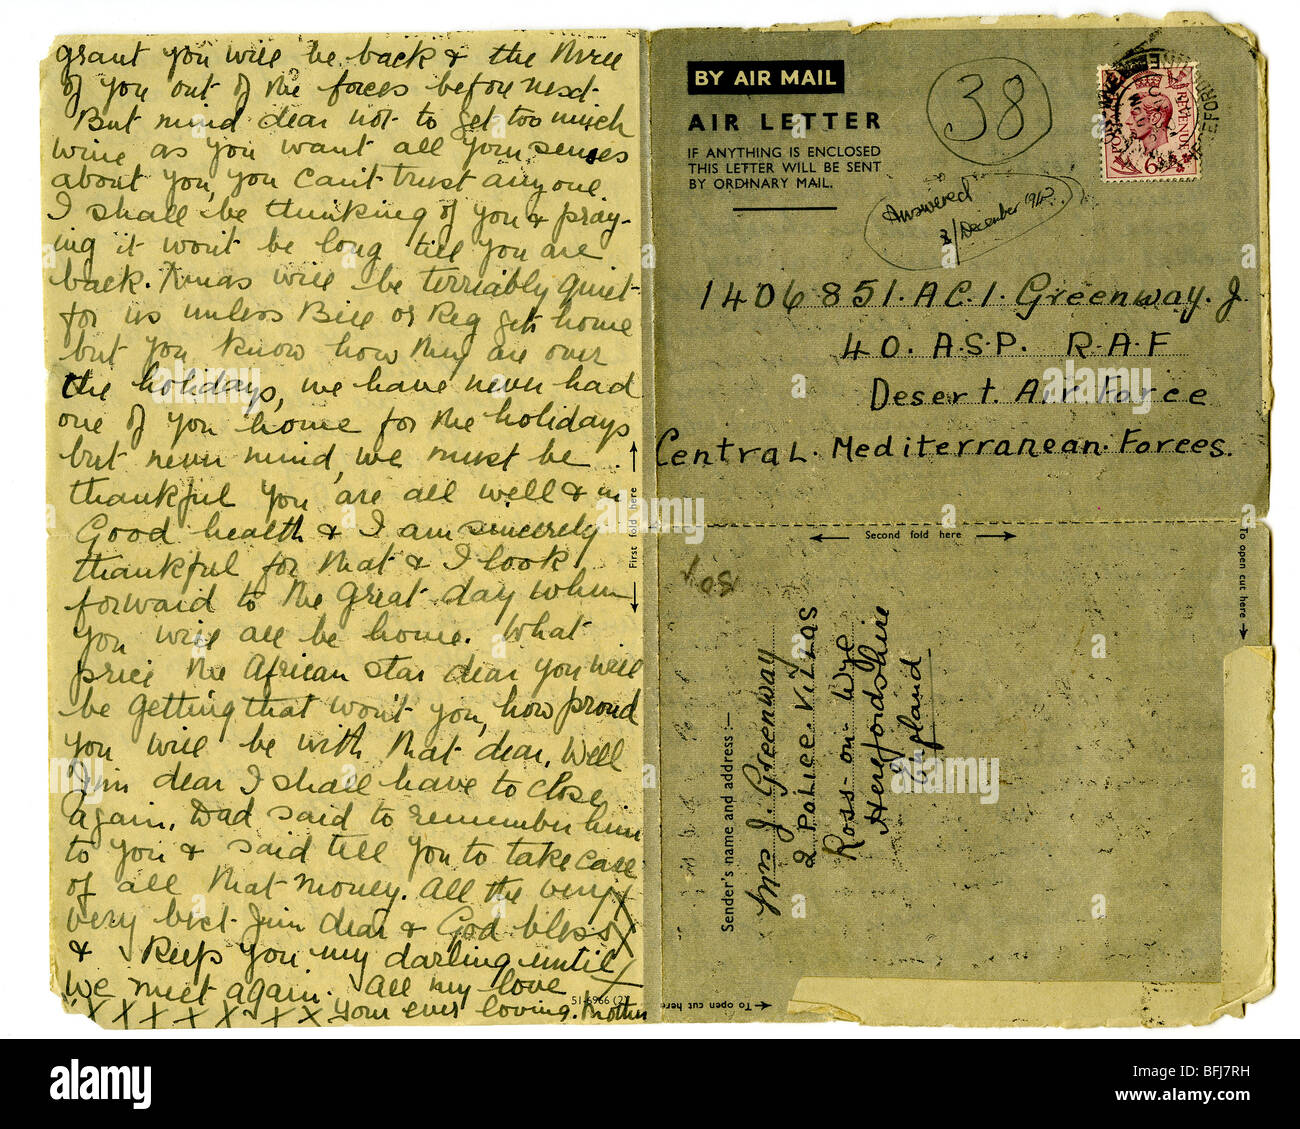 AIR LETTER of the type sent from the UK to servicemen overseas during the second world war - Stock Image